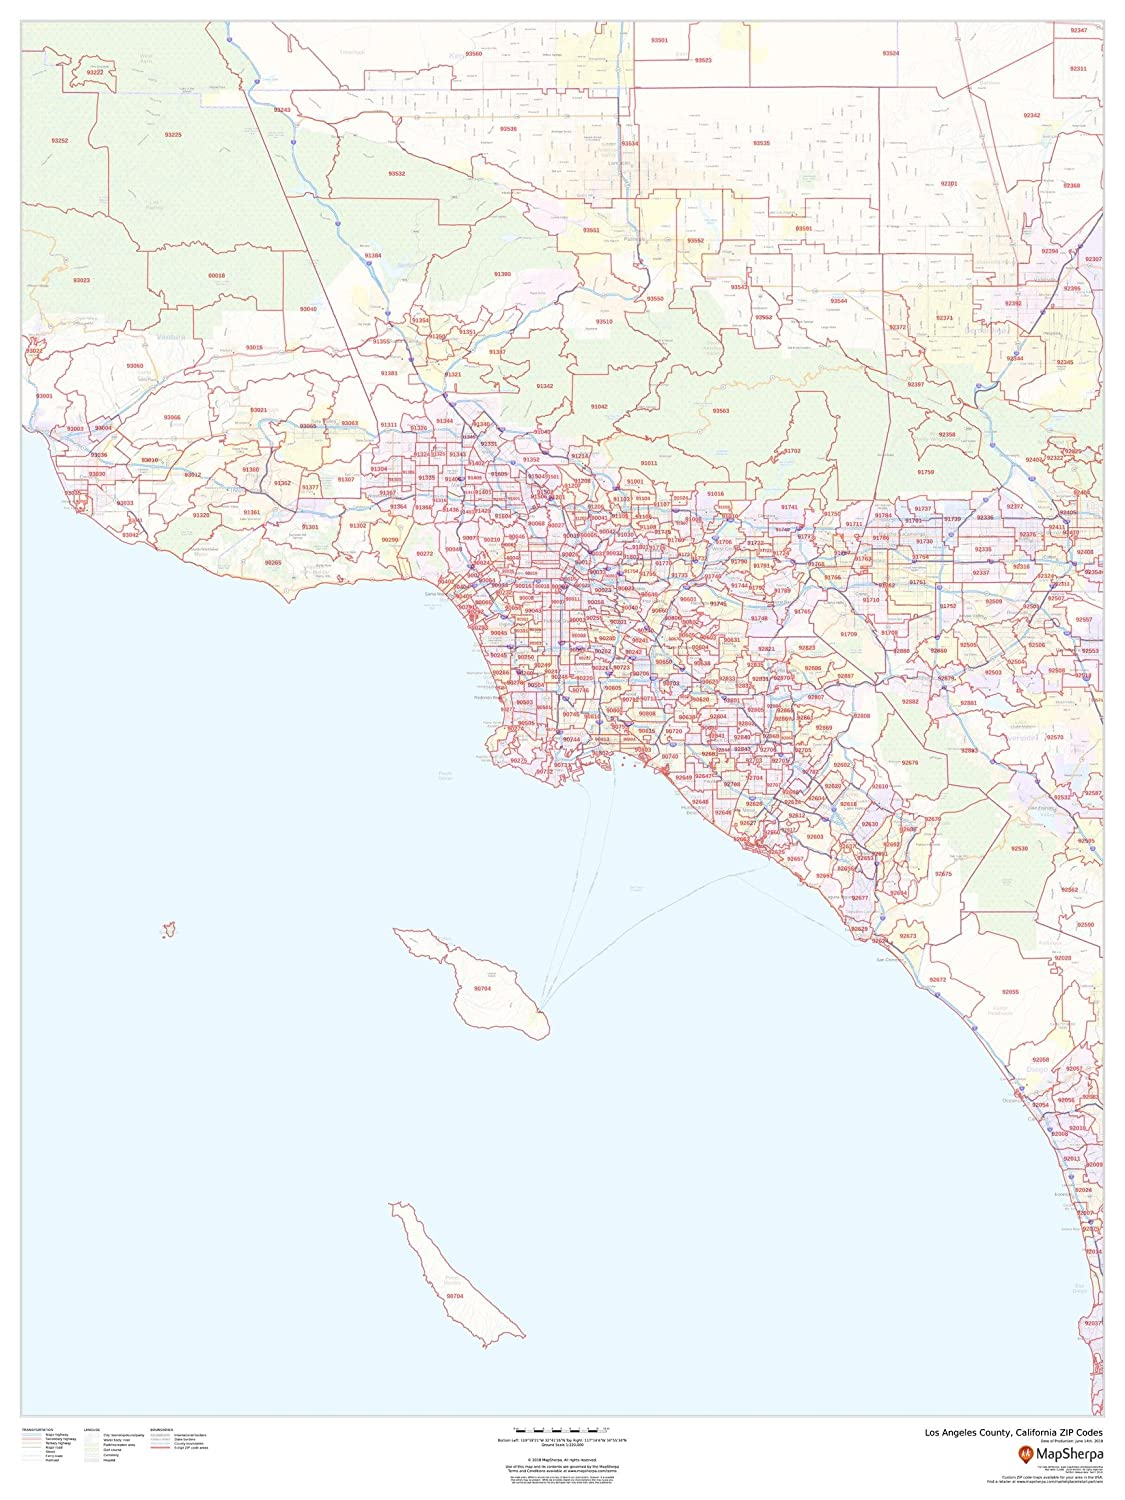 90804 Zip Code Map.Amazon Com Los Angeles County California Zip Codes 36 X 48